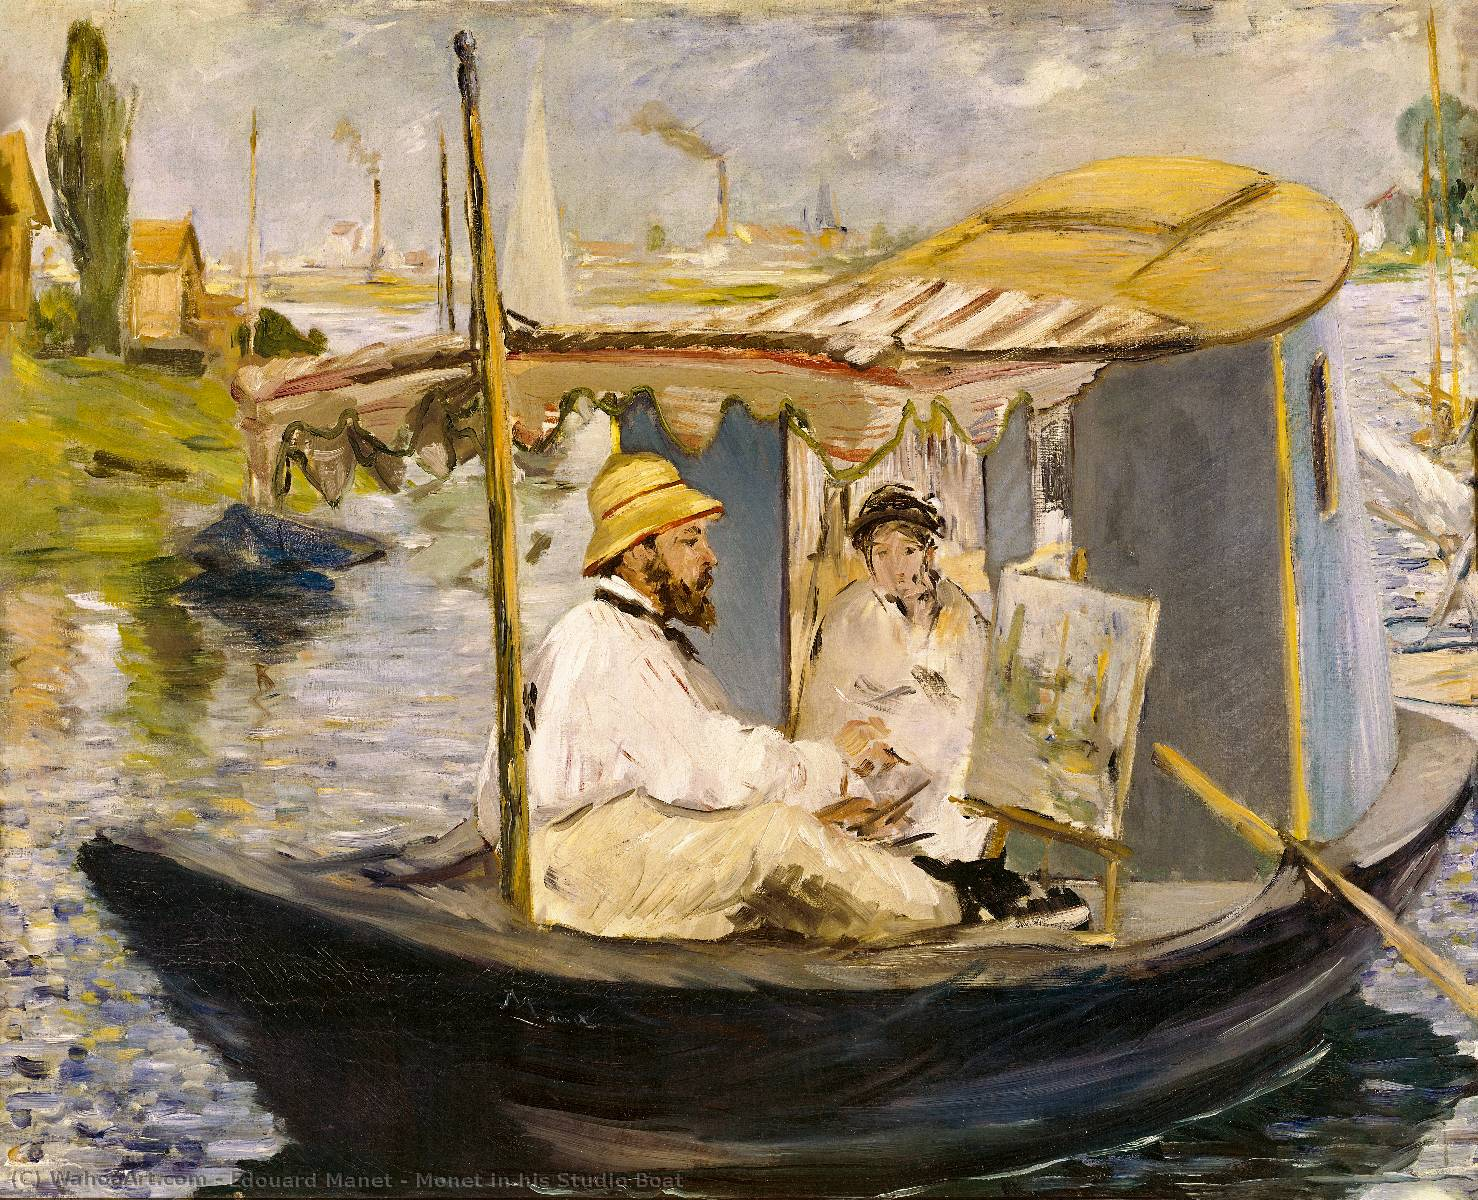 Monet in his Studio Boat, Oil On Canvas by Edouard Manet (1832-1883, France)